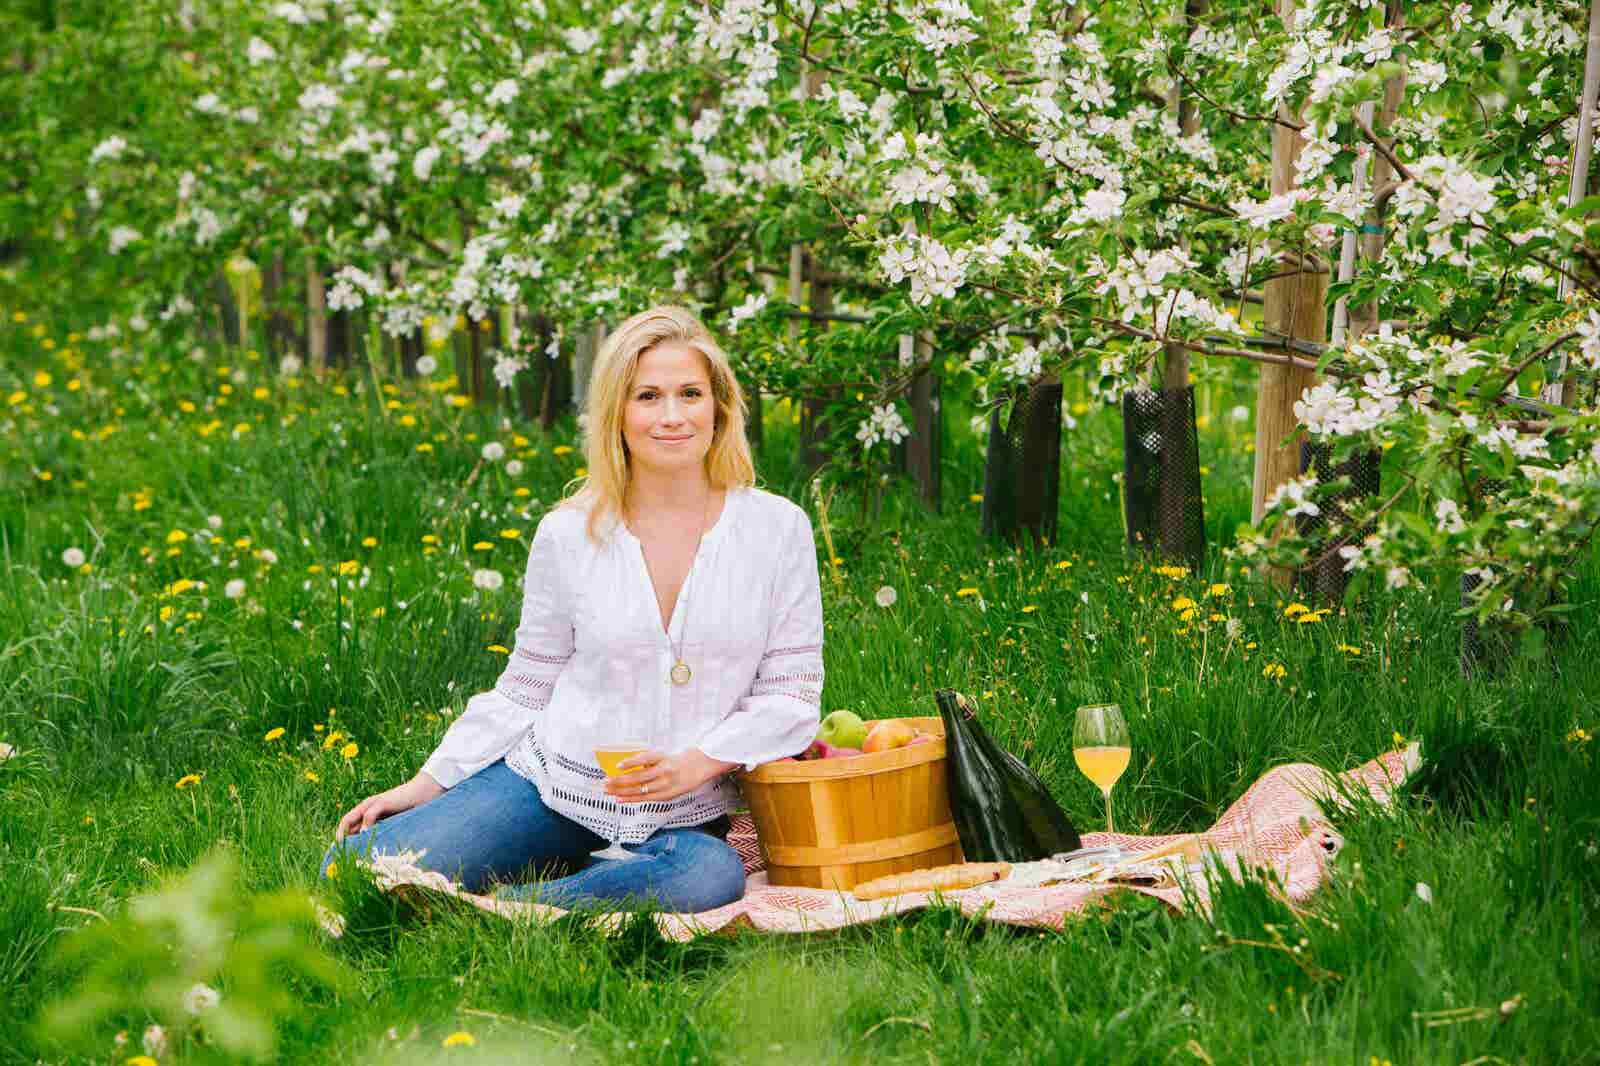 From Beauty Exec to Founder of Hard-Cider Marketplace, This Entrepreneur Shares How She Transitioned Into a Highly Regulated Industry